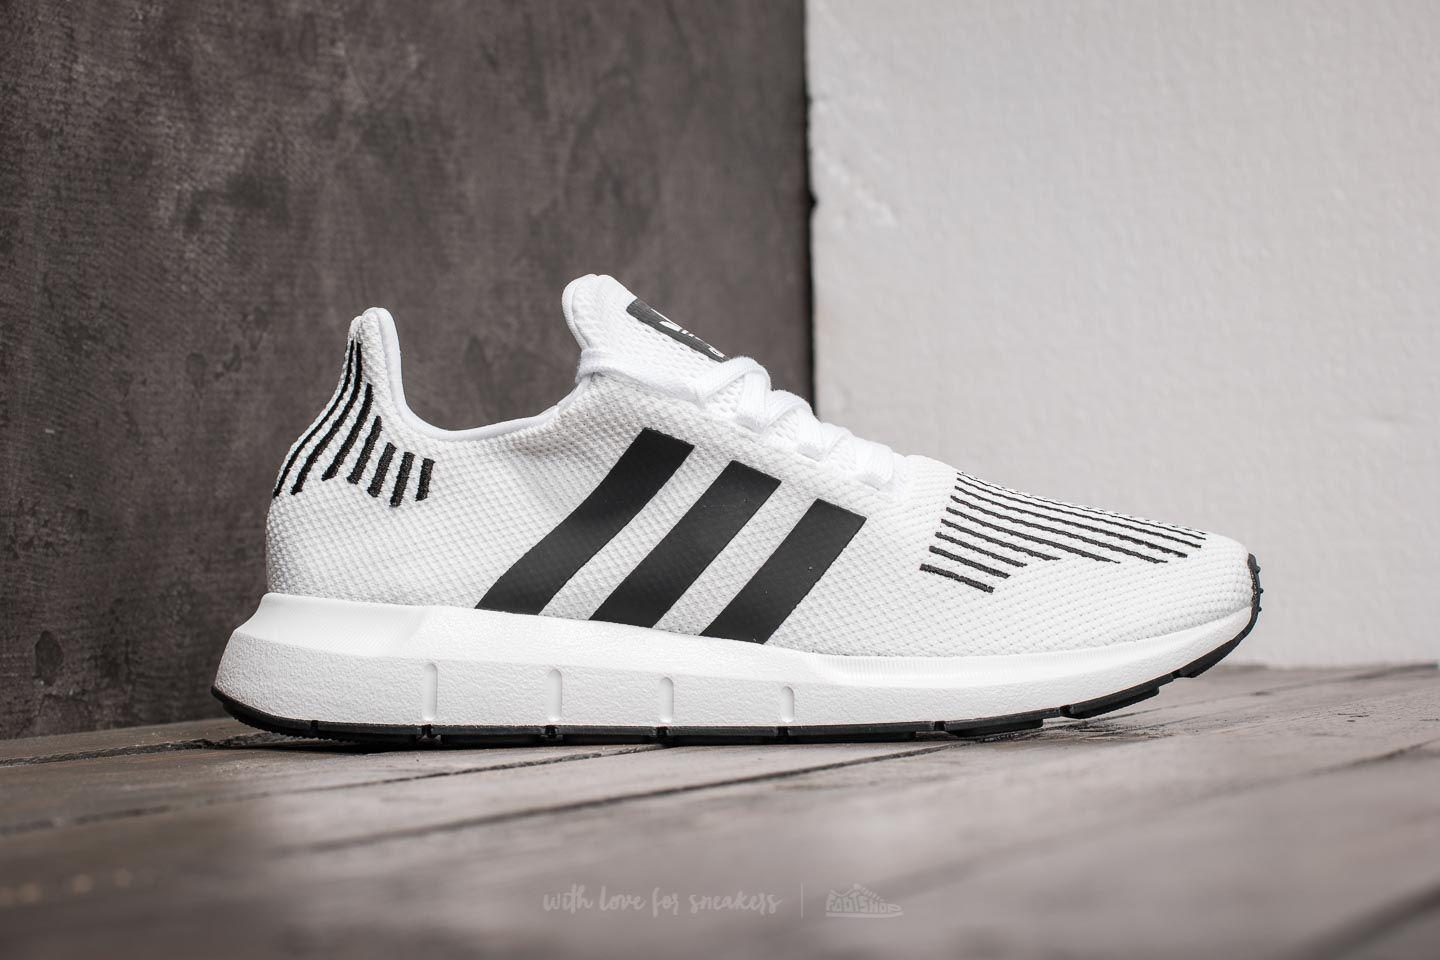 eb953b303 Lyst - adidas Originals Adidas Swift Run Ftw White  Core Black ...